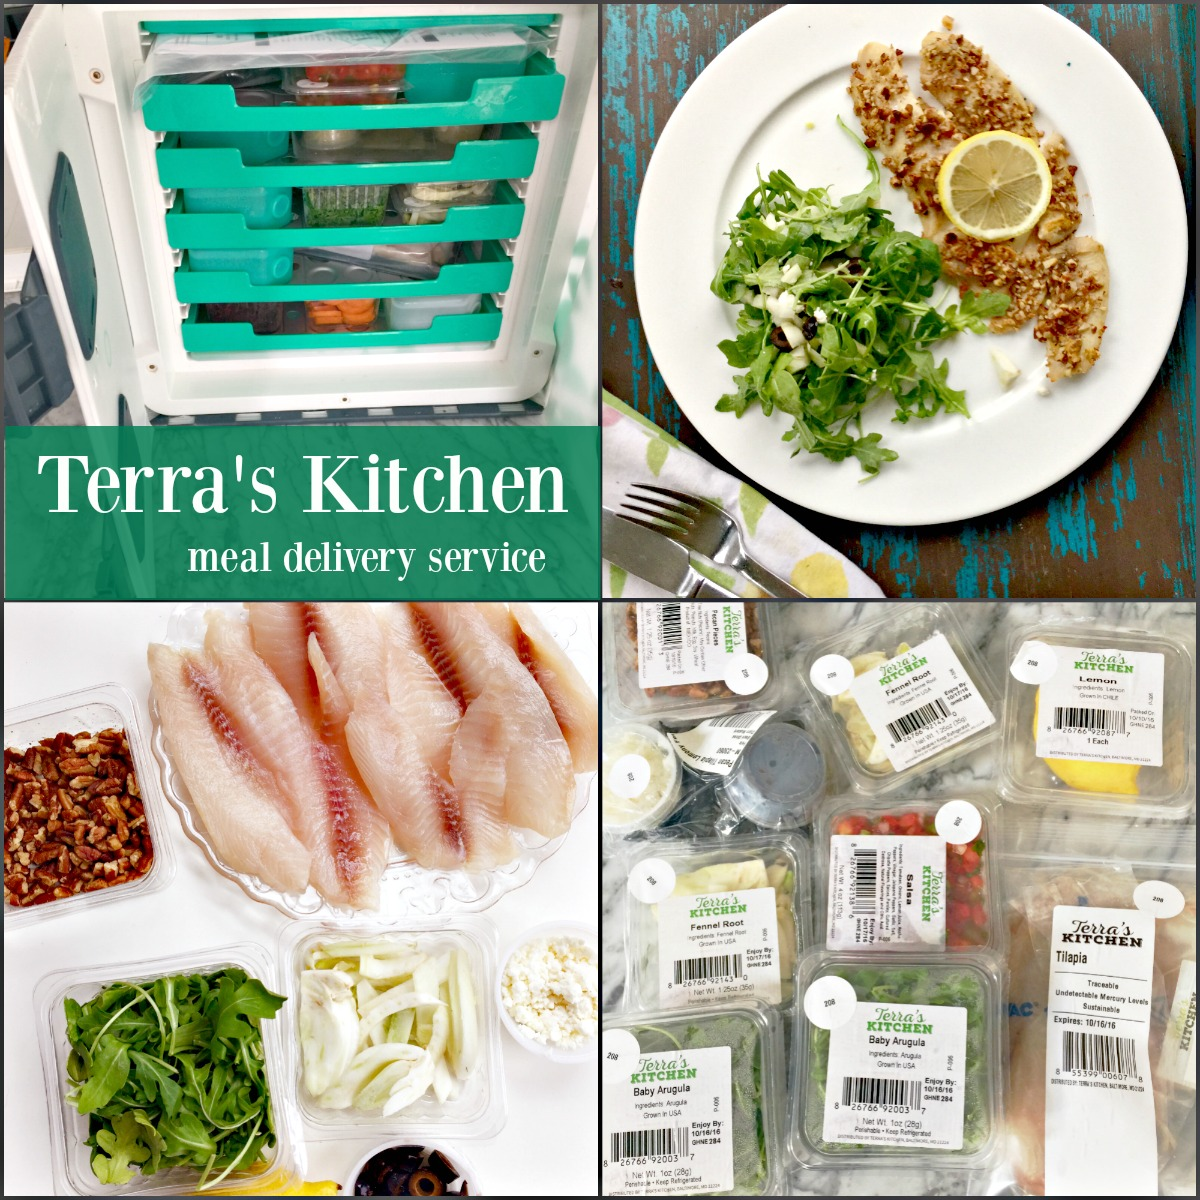 Terra's Kitchen Best Meal Delivery Service by Angela Roberts